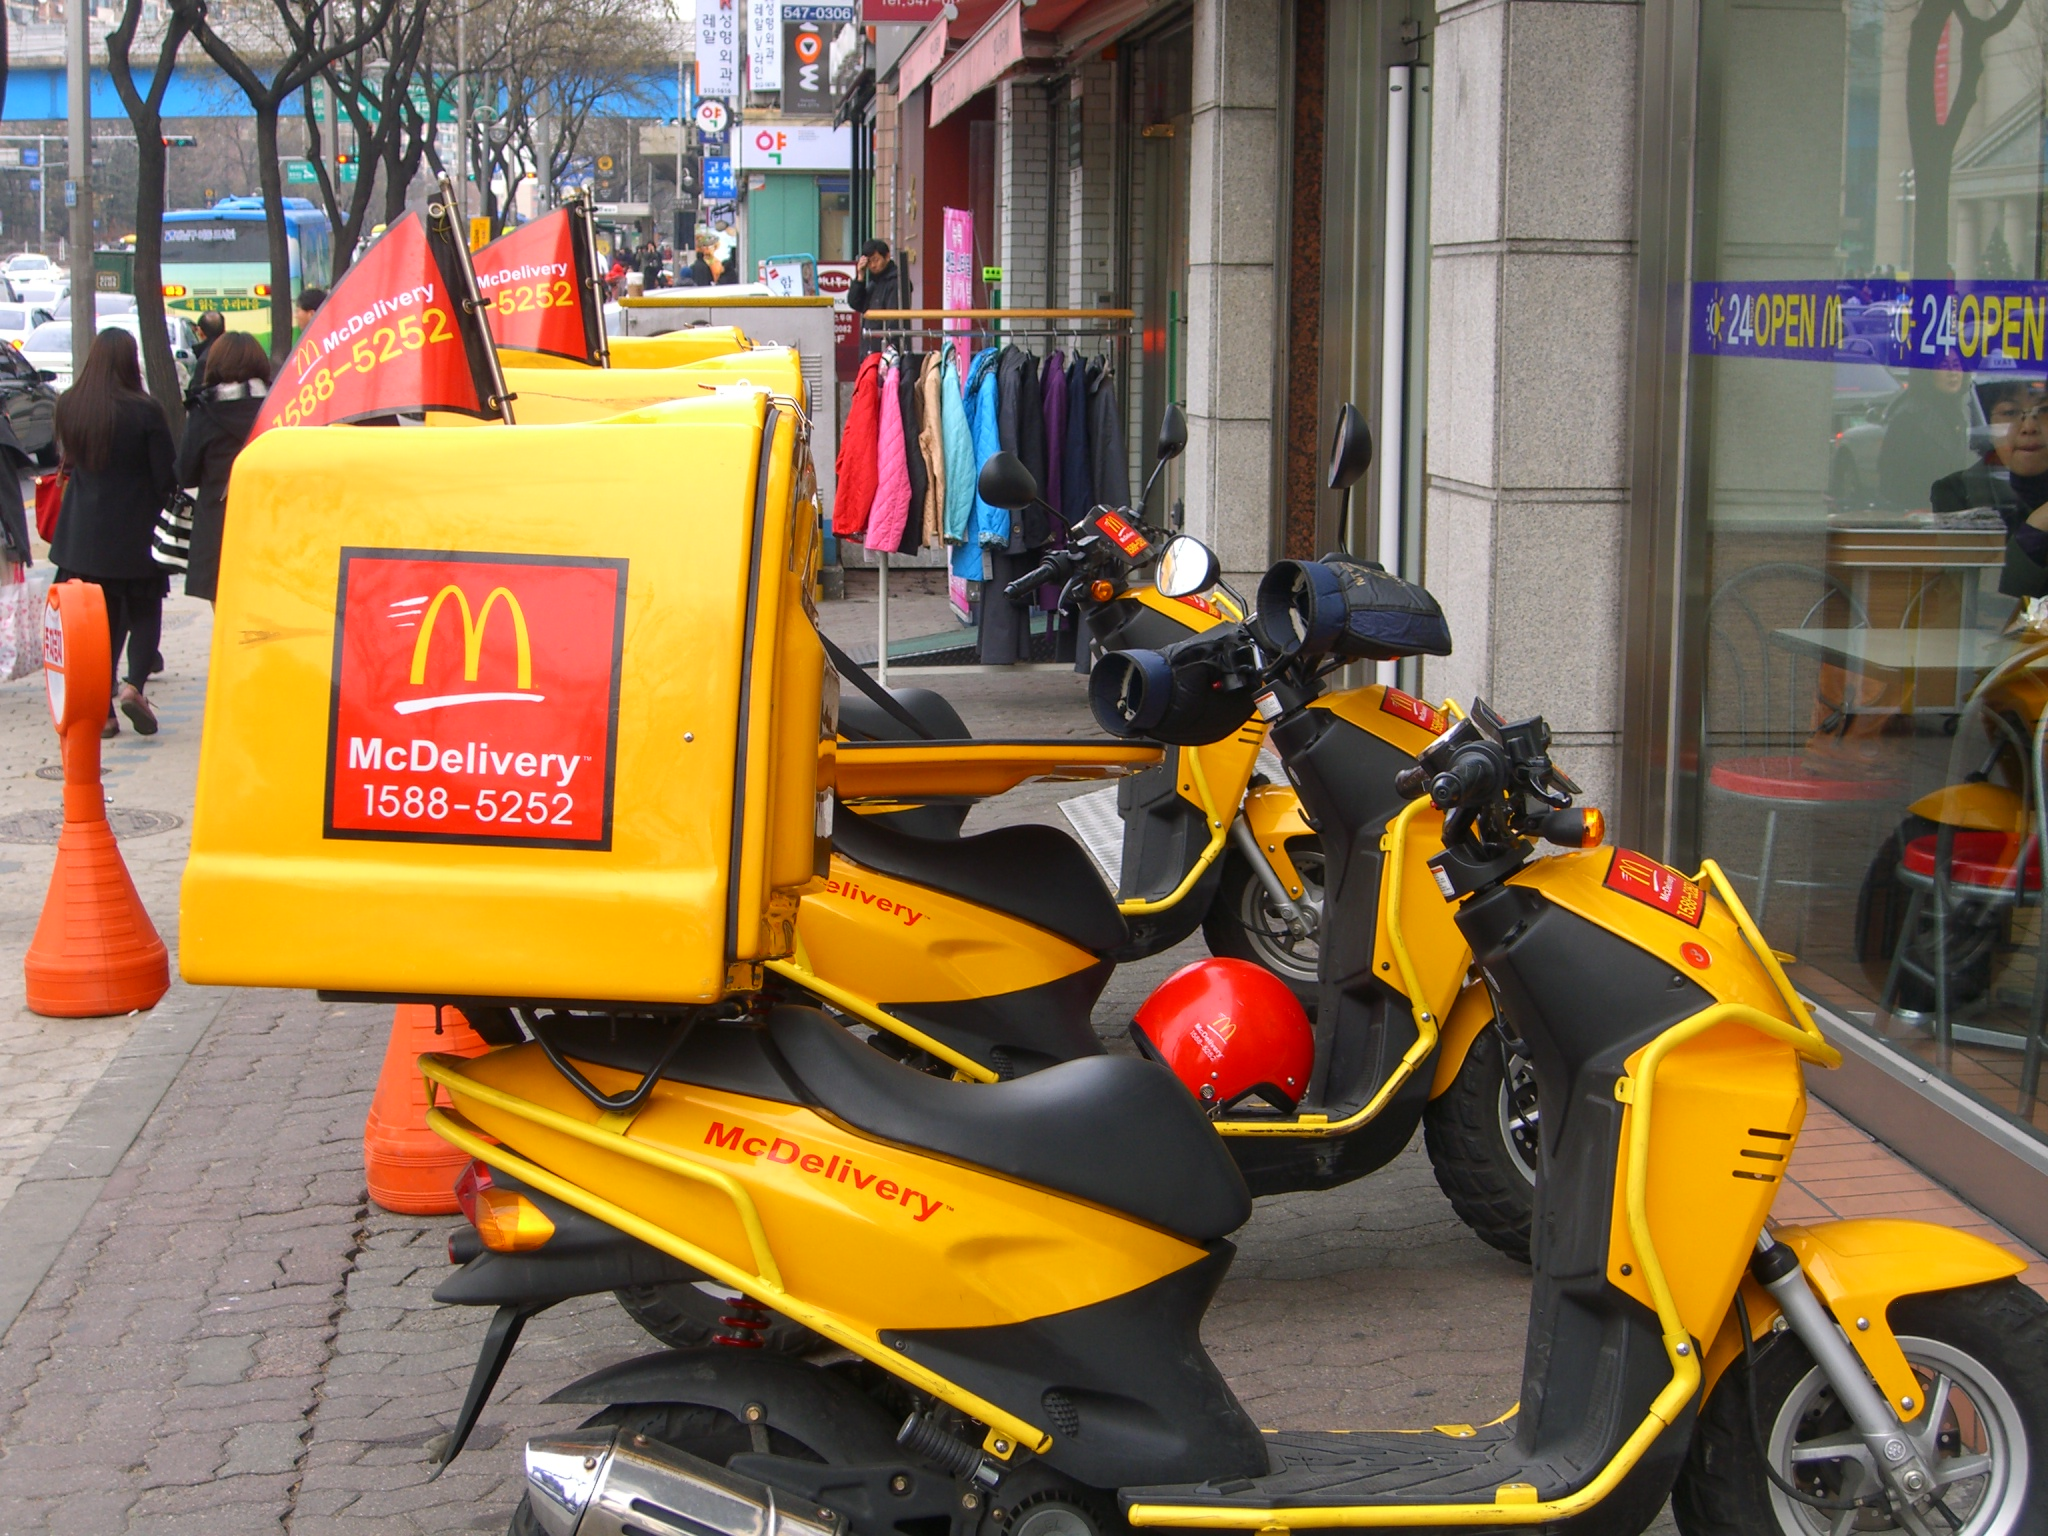 01-Mcdelivery.jpg